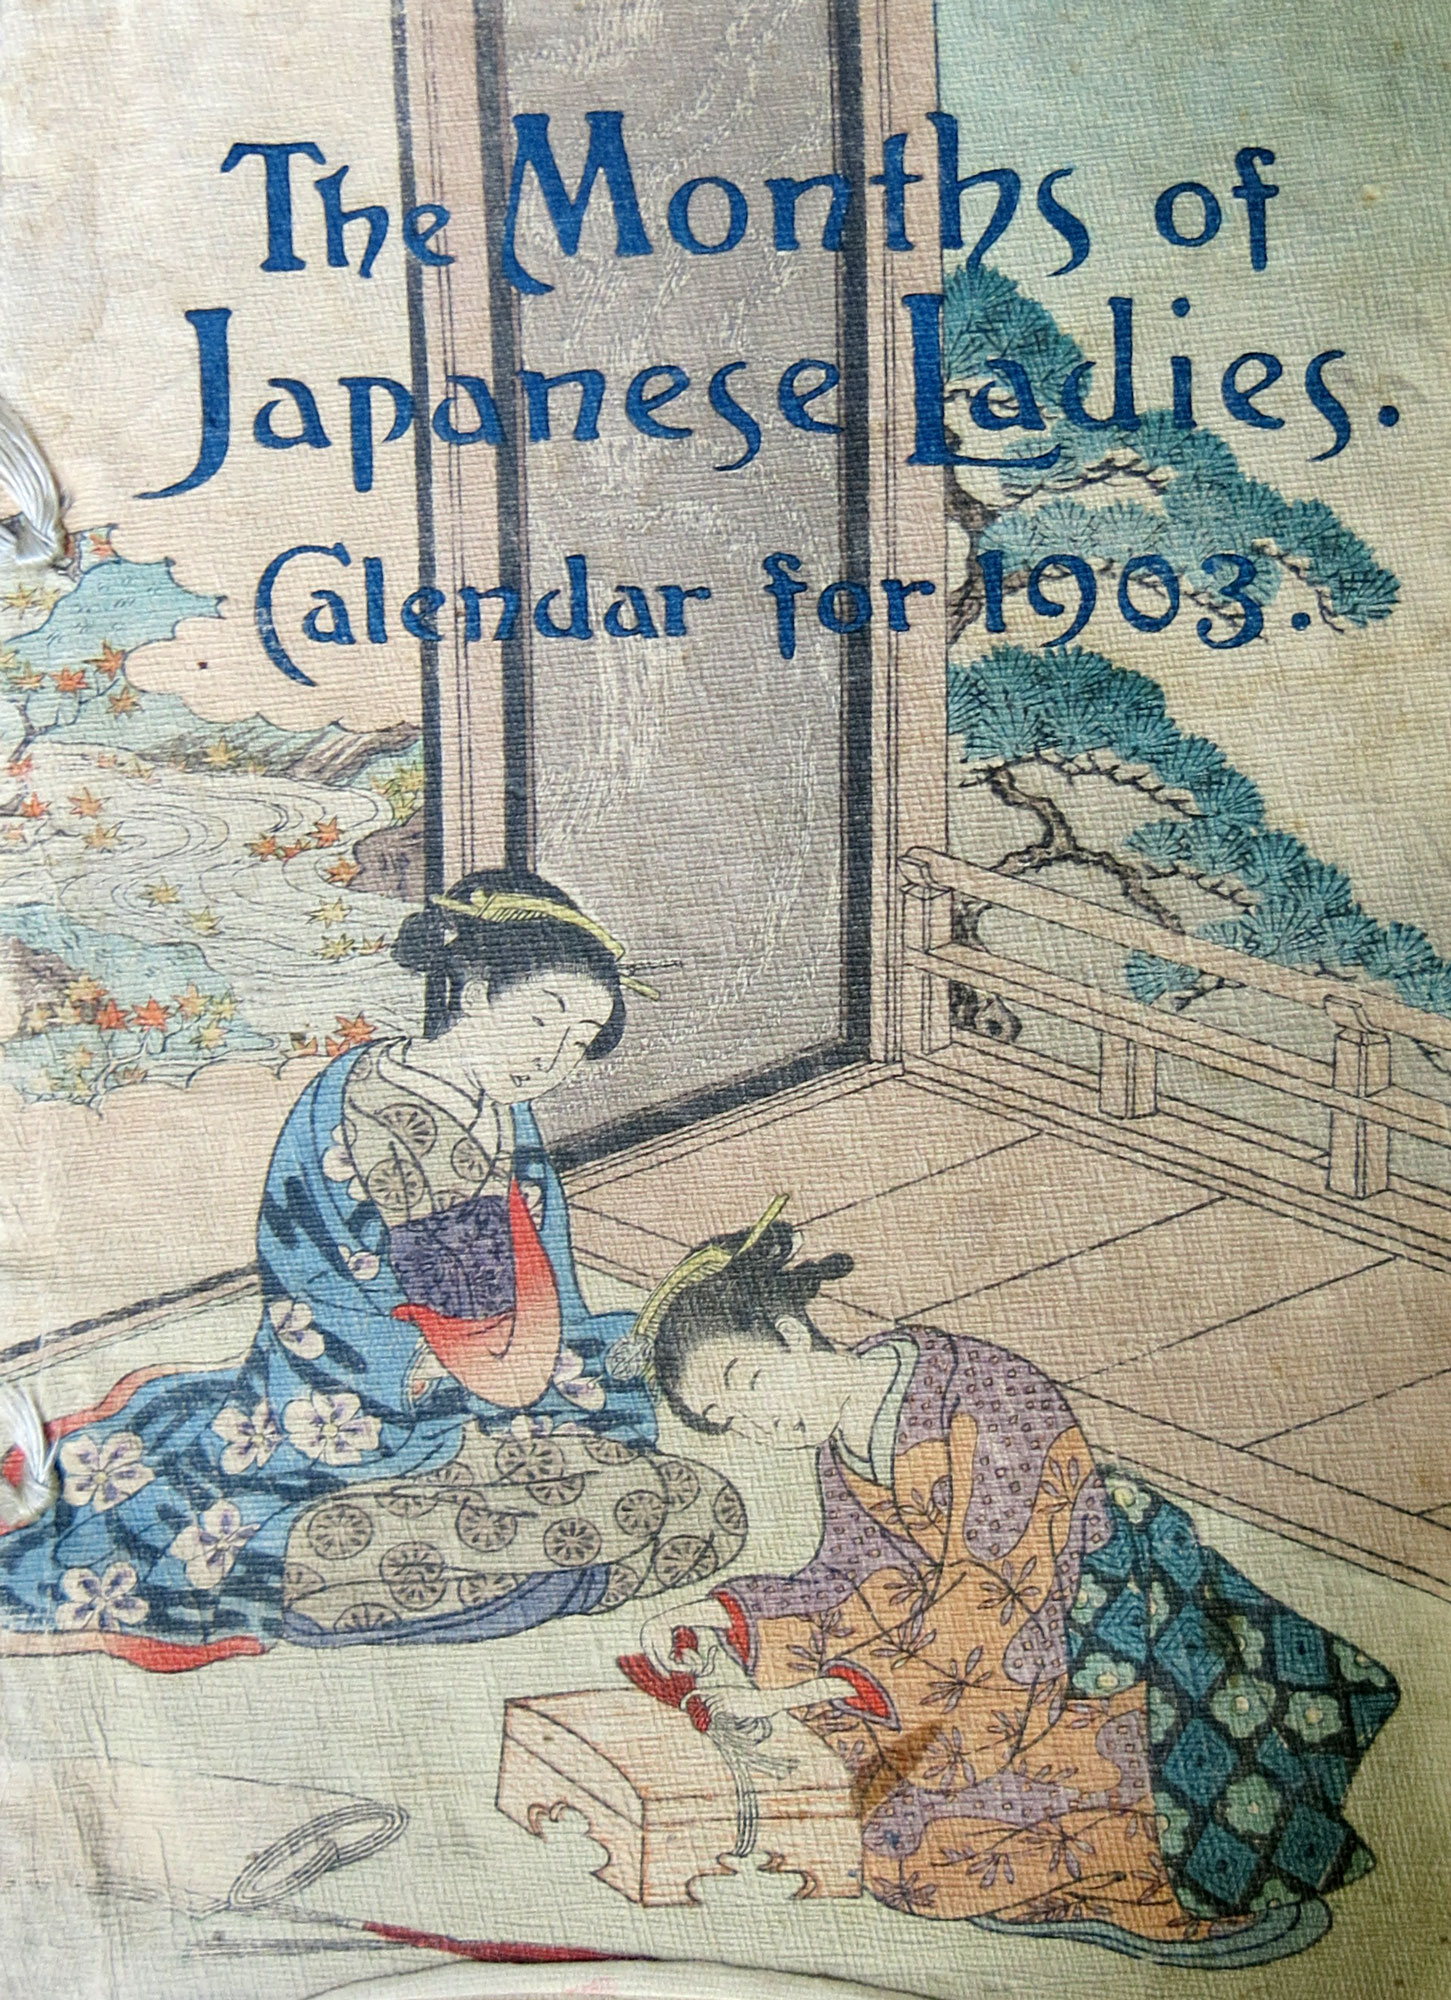 The Months of Japanese Ladies, Calendar for 1903